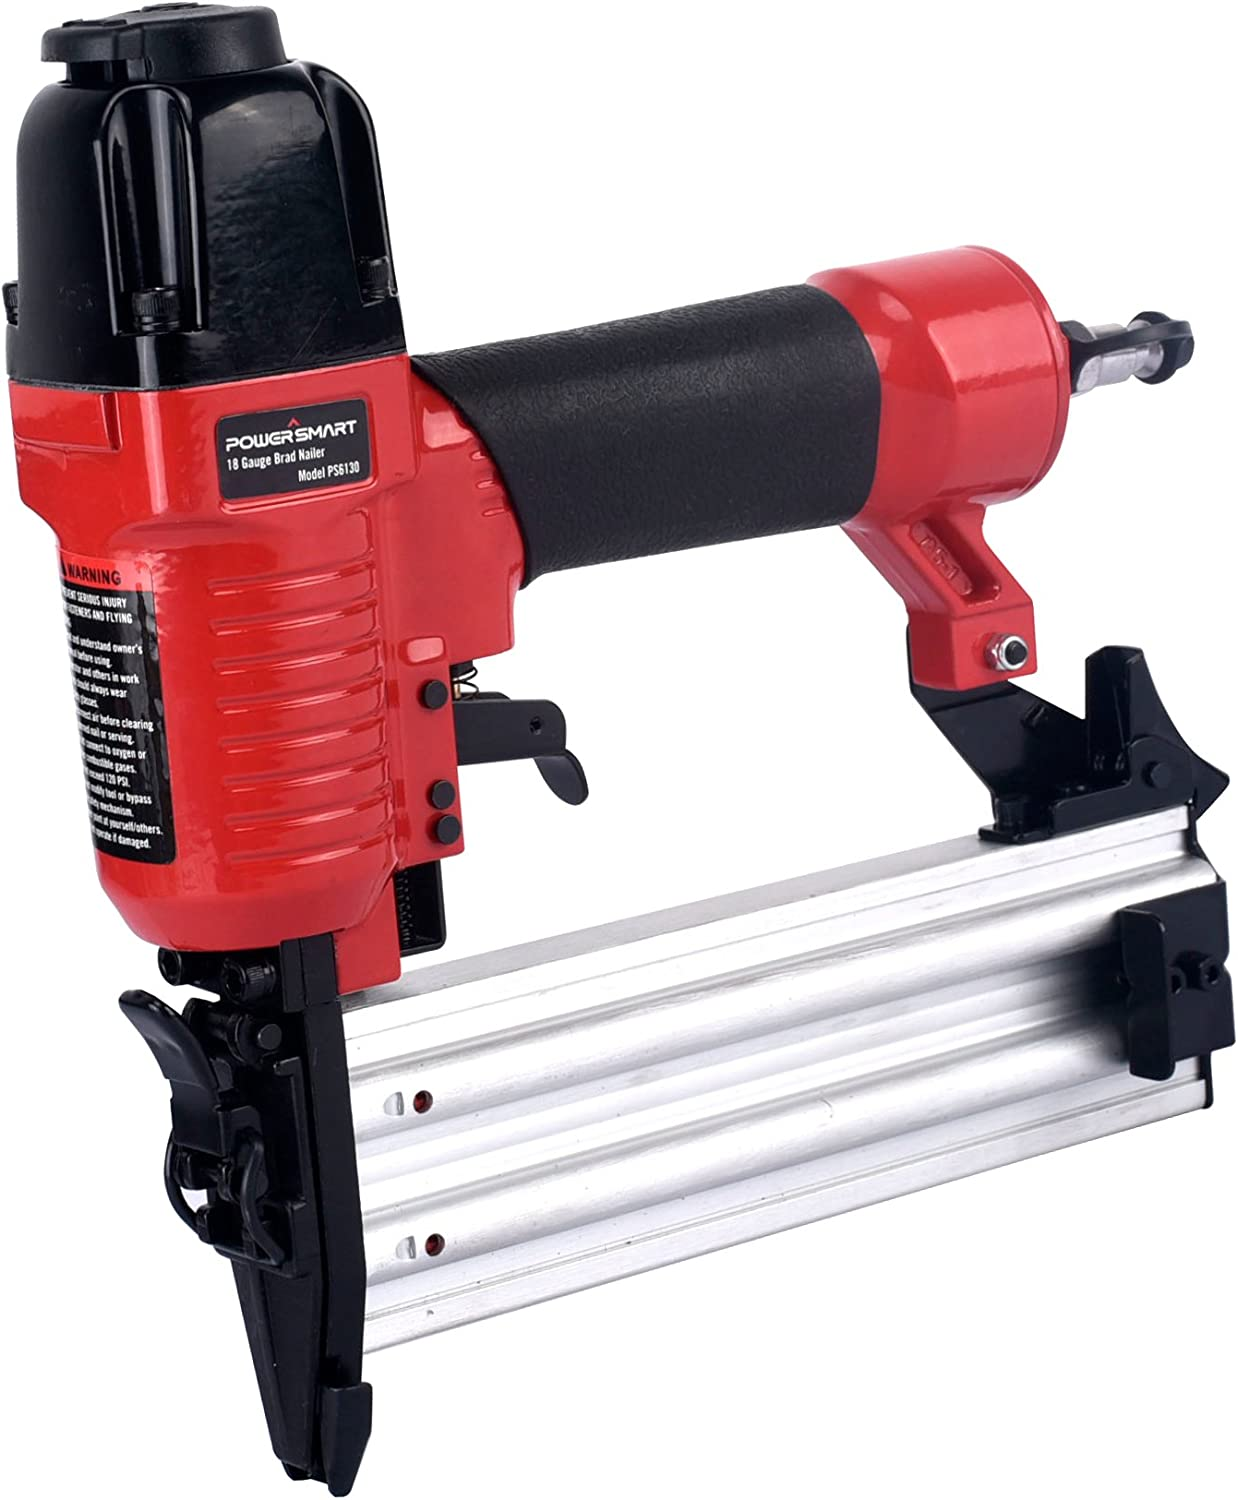 PowerSmart PS6130 Pneumatic 18 Gauge Brad Nailer